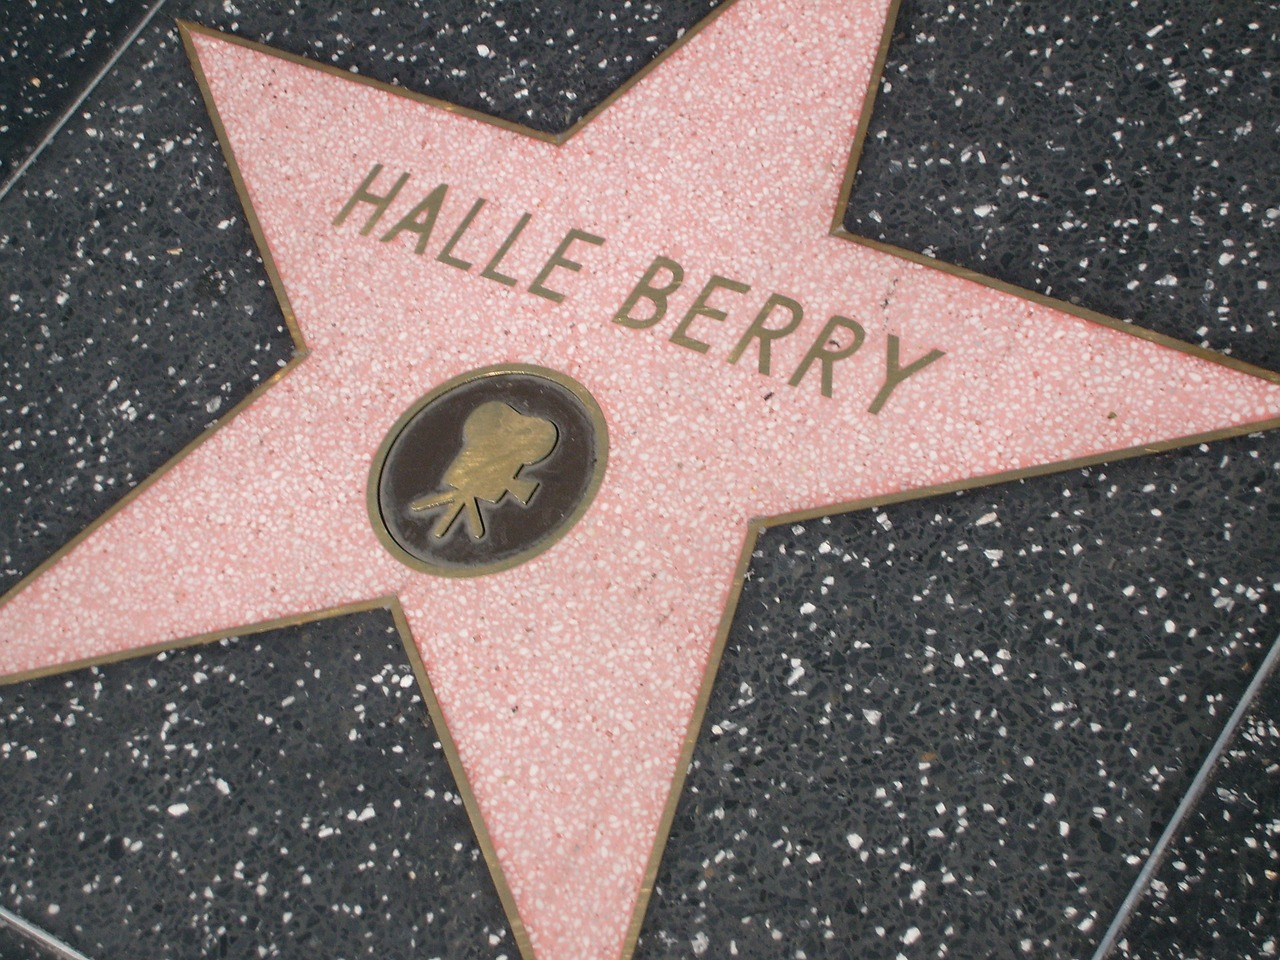 Halle Berry star on the Hollywood Walk of Fame